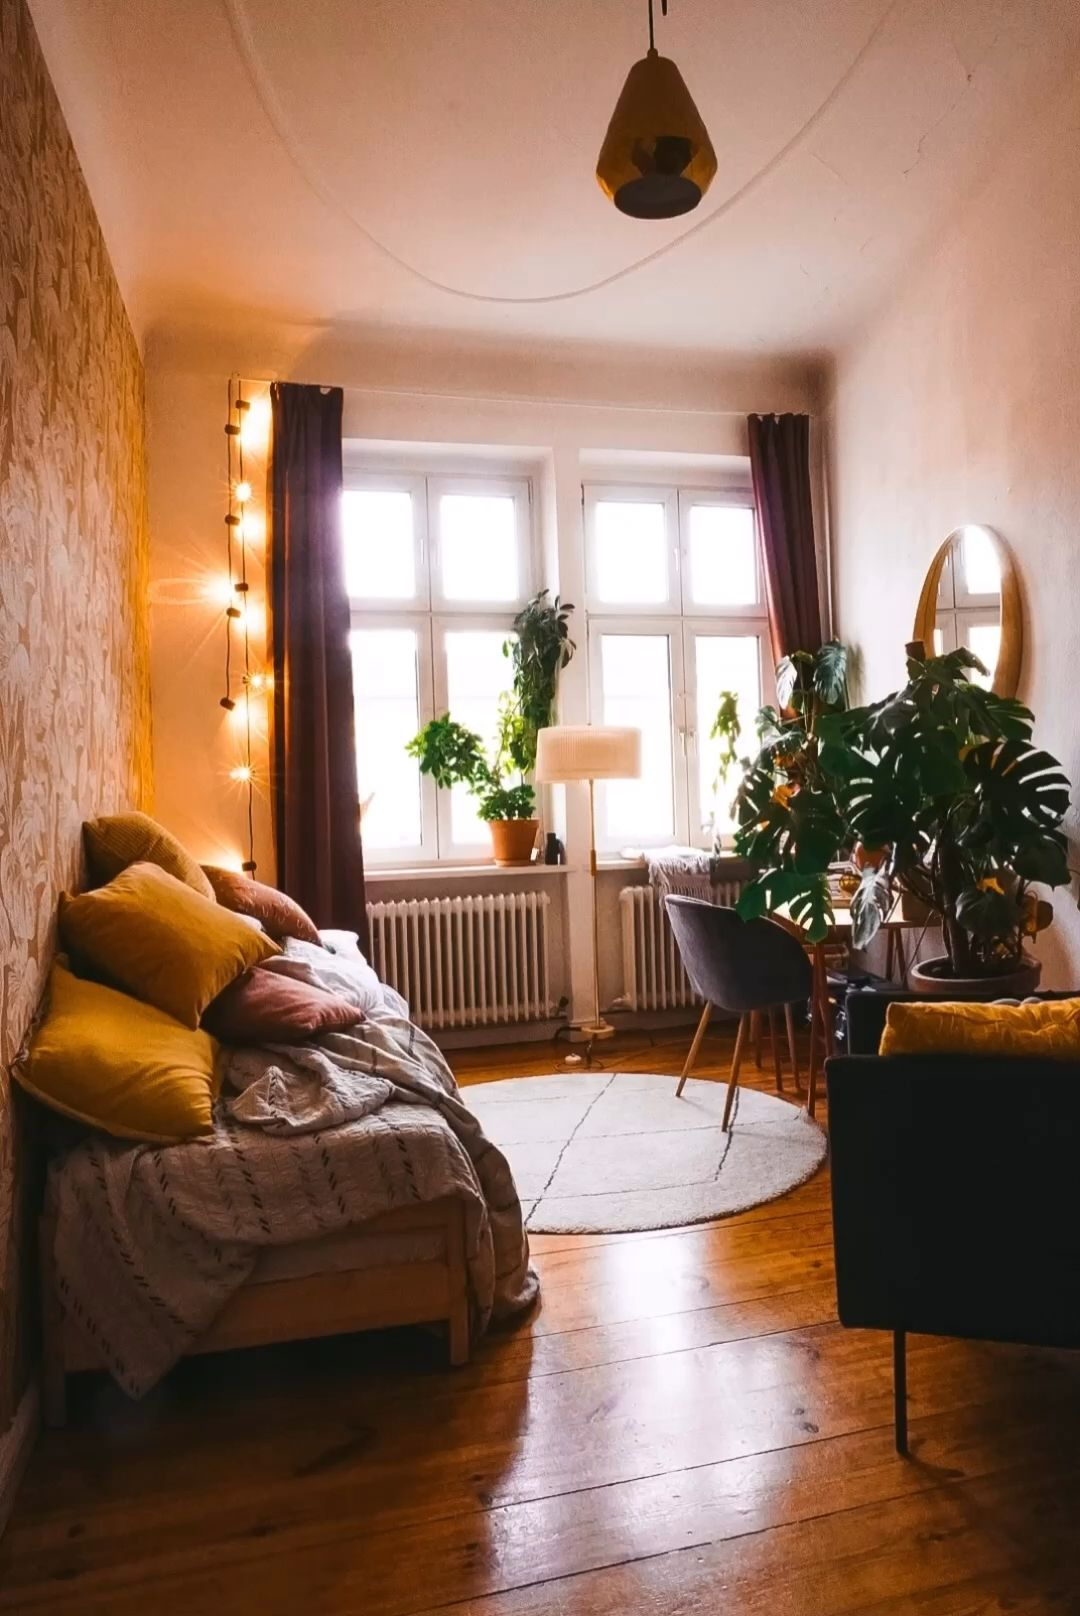 Life at the space limit - Fridlaa's first own apartment in Berlin -  Space-saving options for your first own apartment  - #Apartment #Berlin #easyHomeDecor #Fridlaa39s #HomeDecorhabitacion #HomeDecorindustrial #HomeDecorvideos #indianHomeDecor #Life #limit #neutralHomeDecor #retroHomeDecor #space